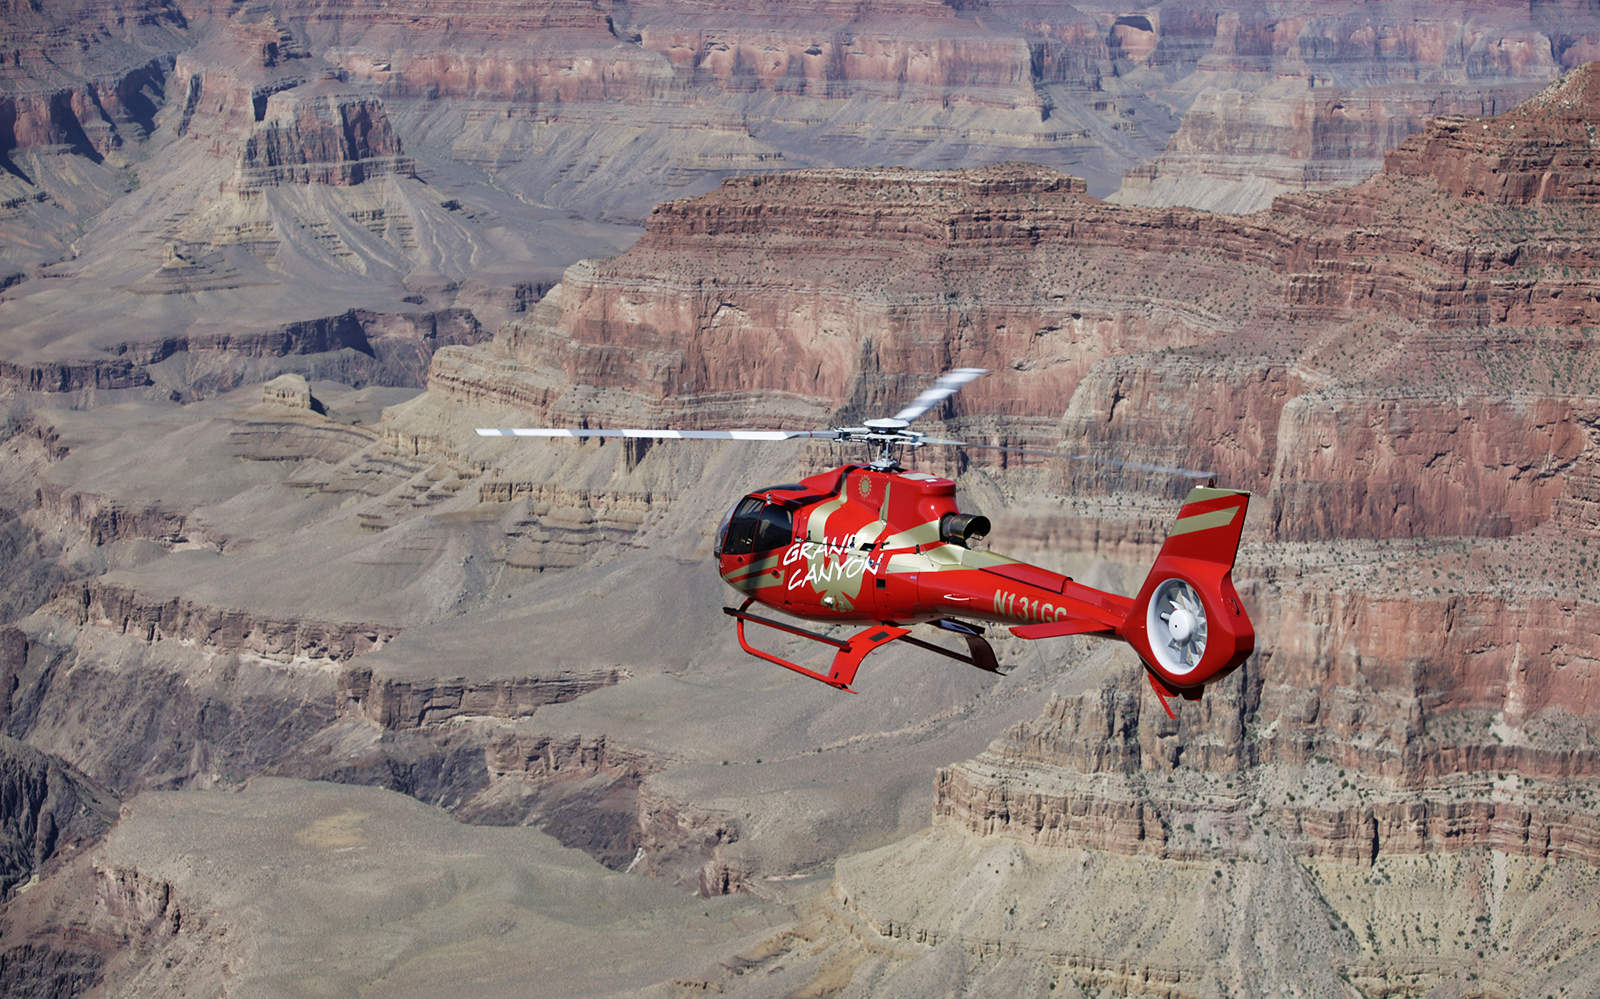 D4a51747 e51b 4b8d b8c0 031aa405b4da 796 las vegas grand canyon helicopter tour with optional landing 02